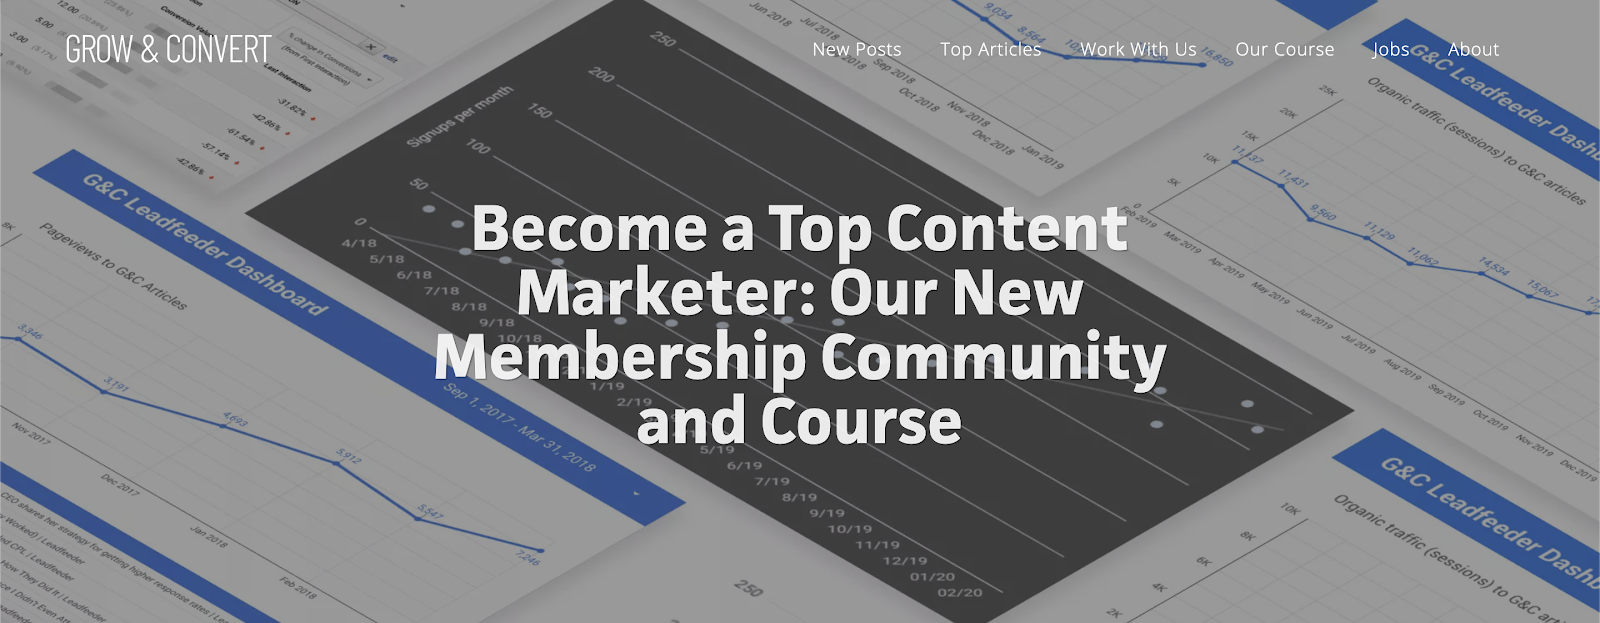 Entrepreneur courses #2: Customers from Content